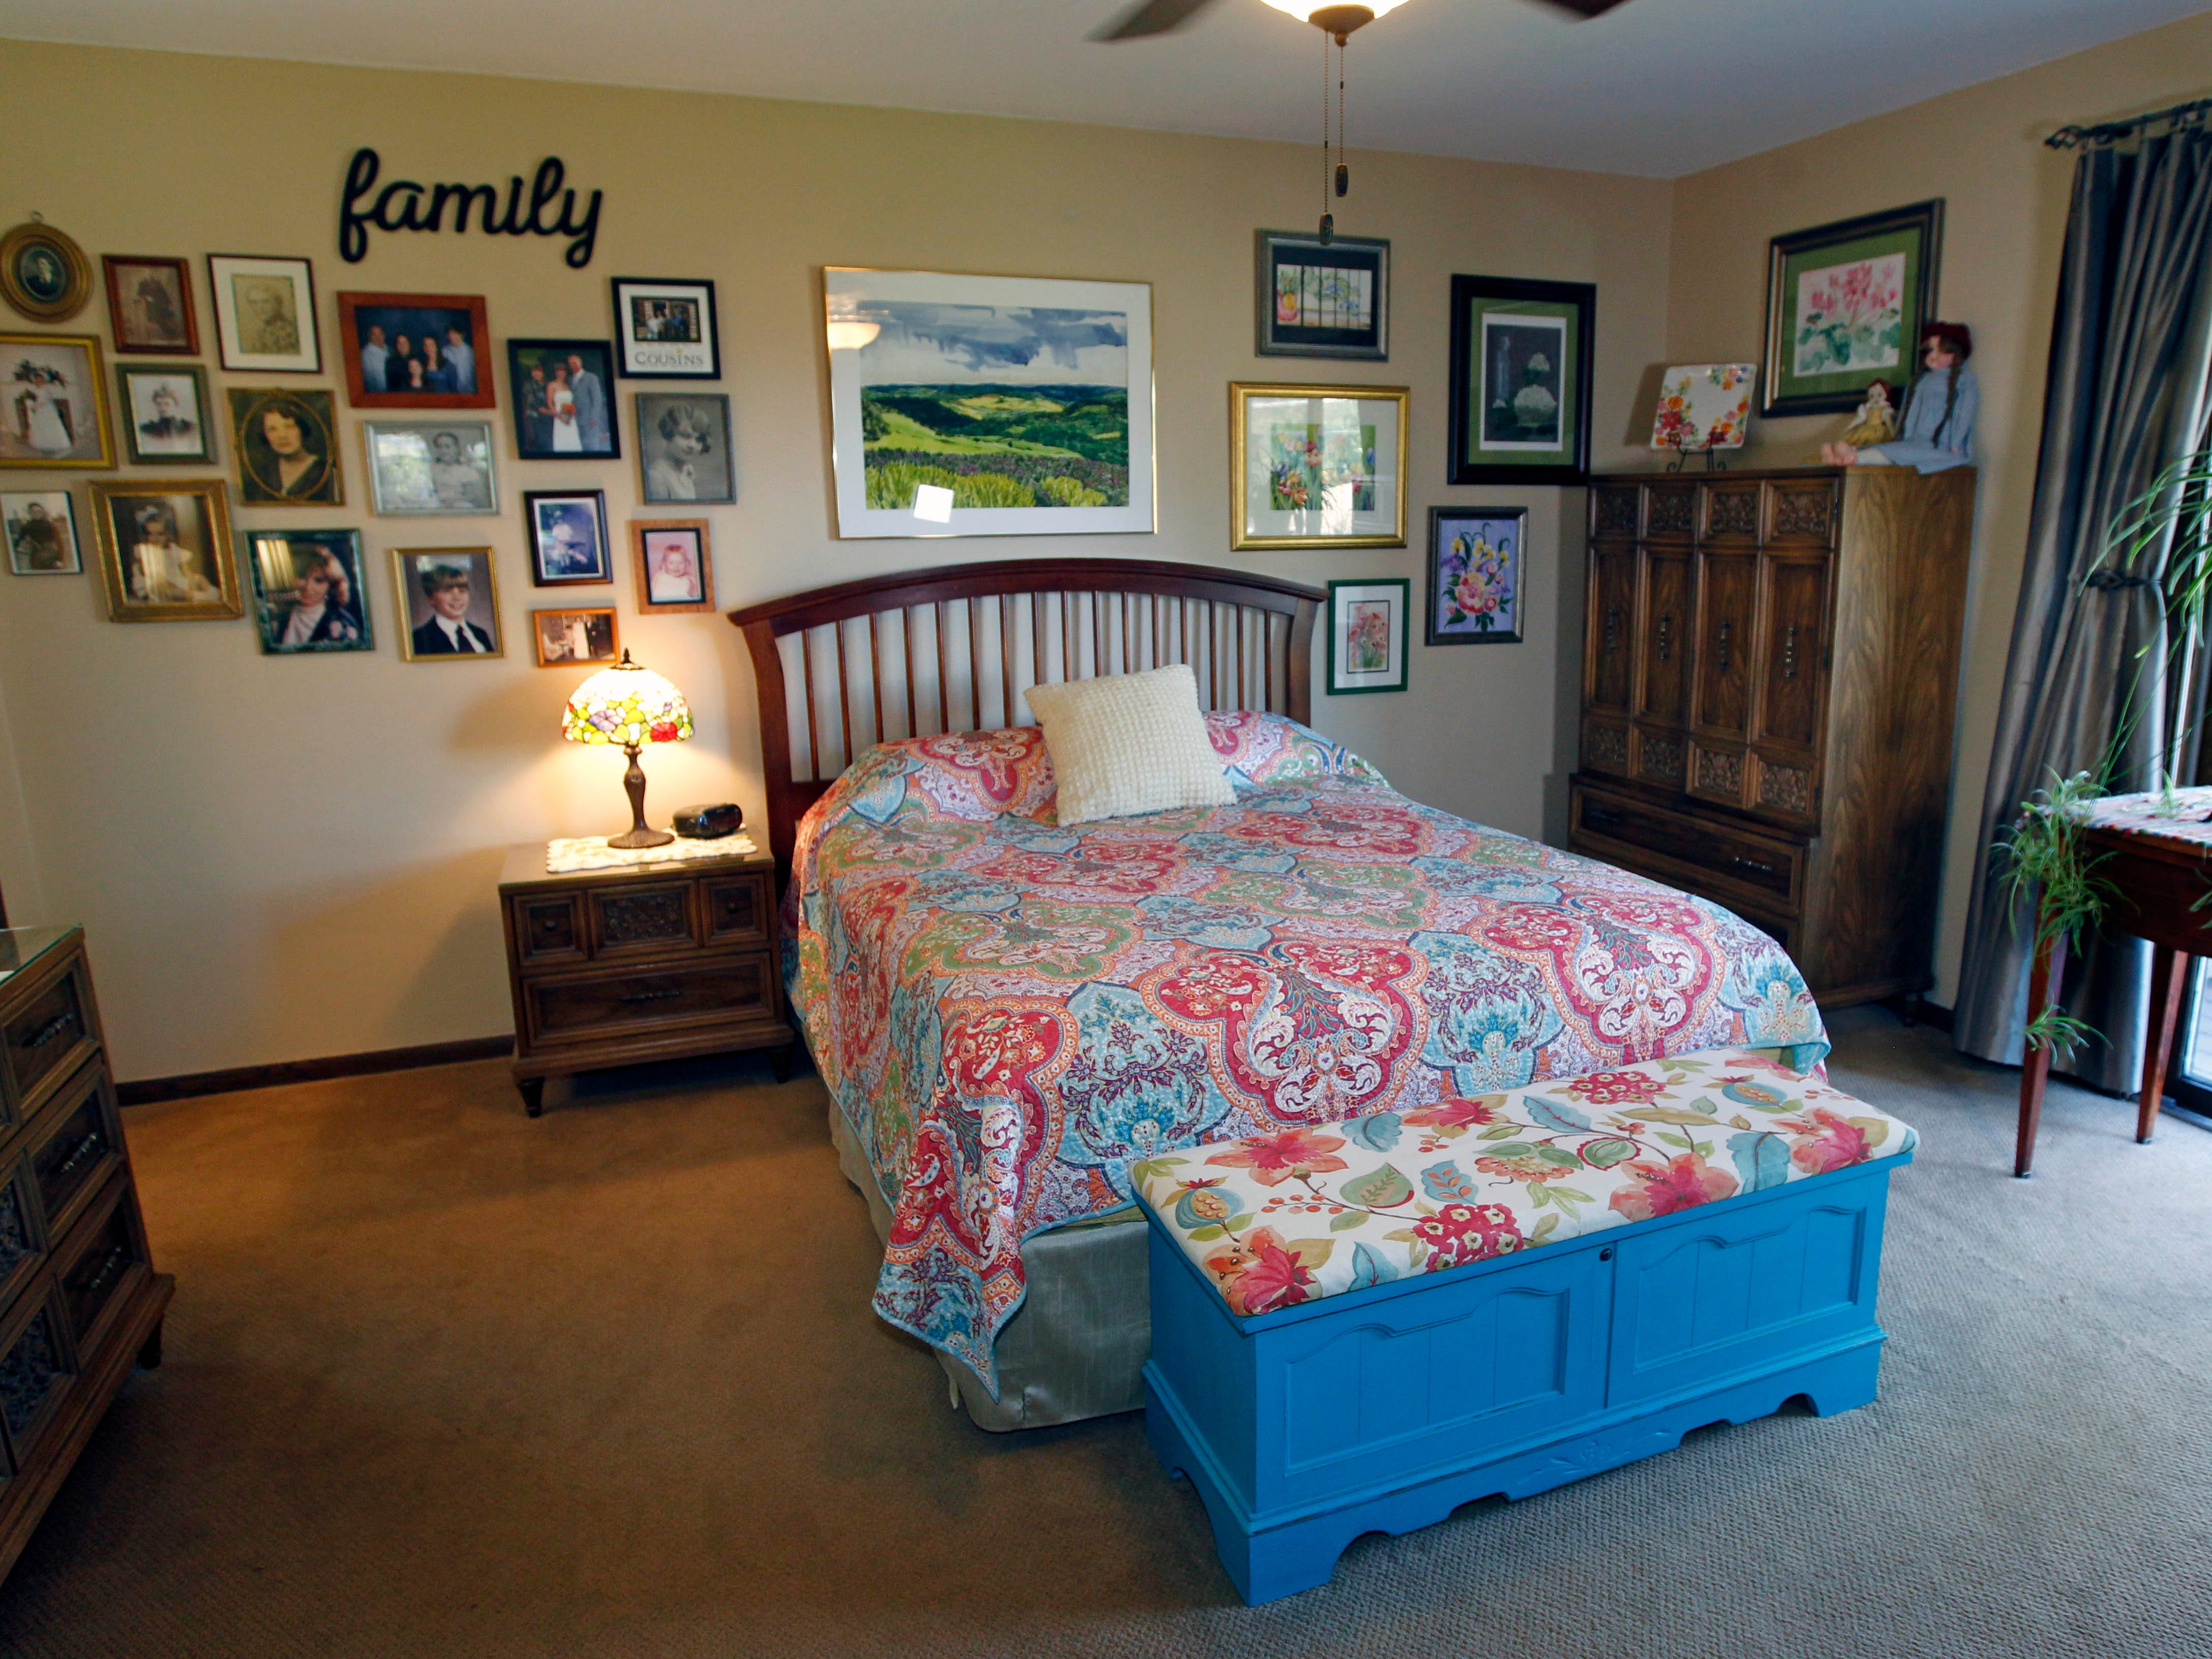 The master bedroom displays family photos and memorabilia.